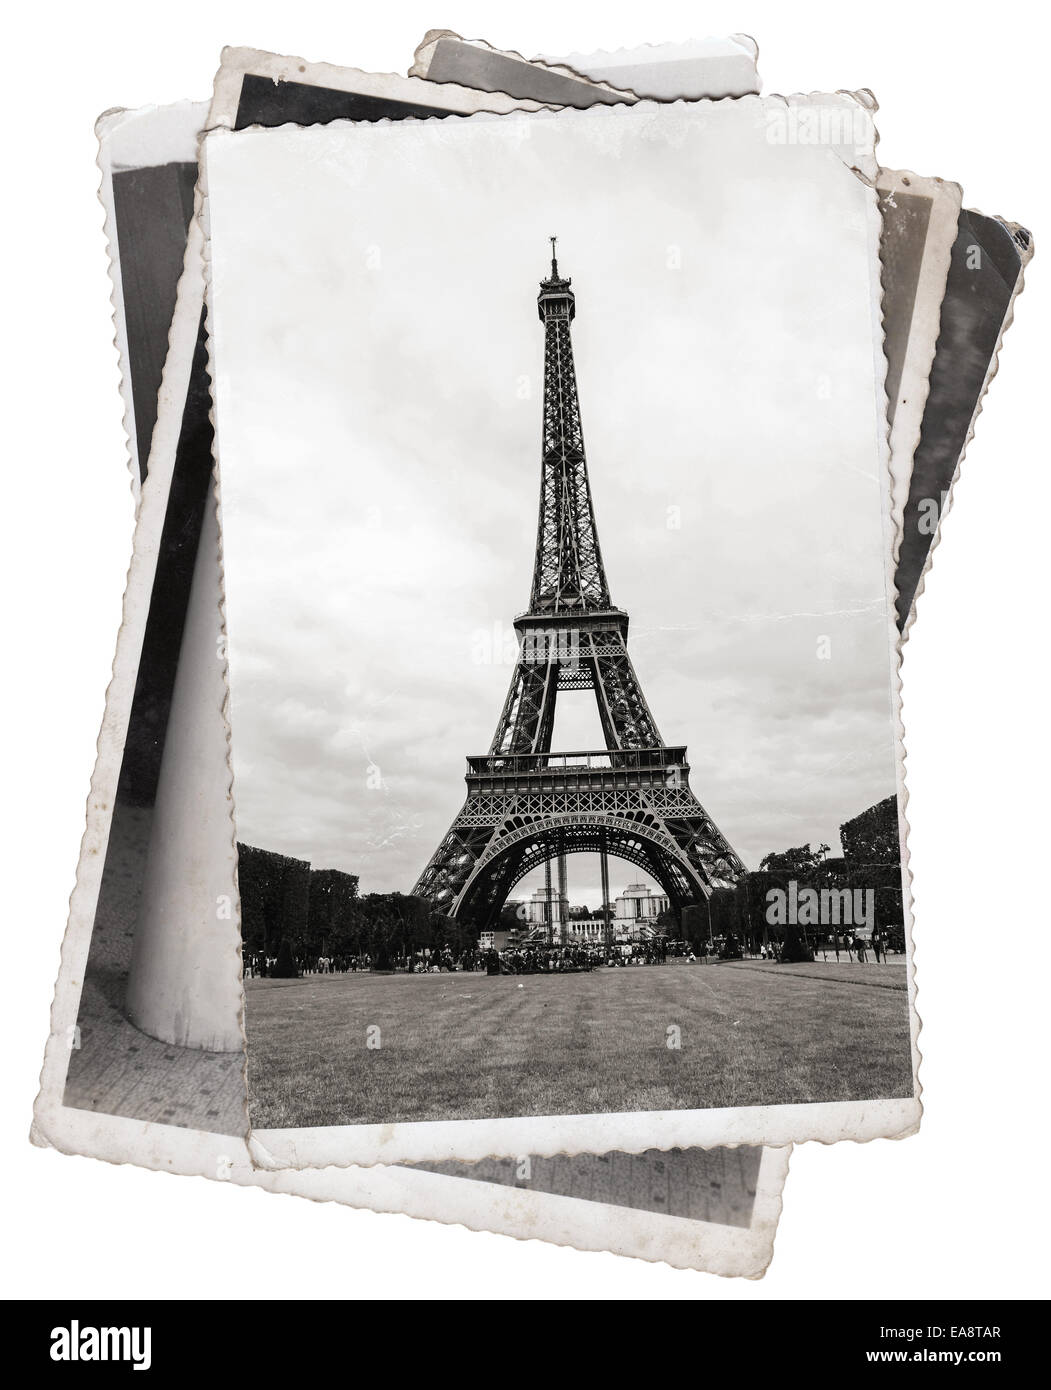 Vintage photos Eiffel Tower, famous symbol of Paris - Stock Image